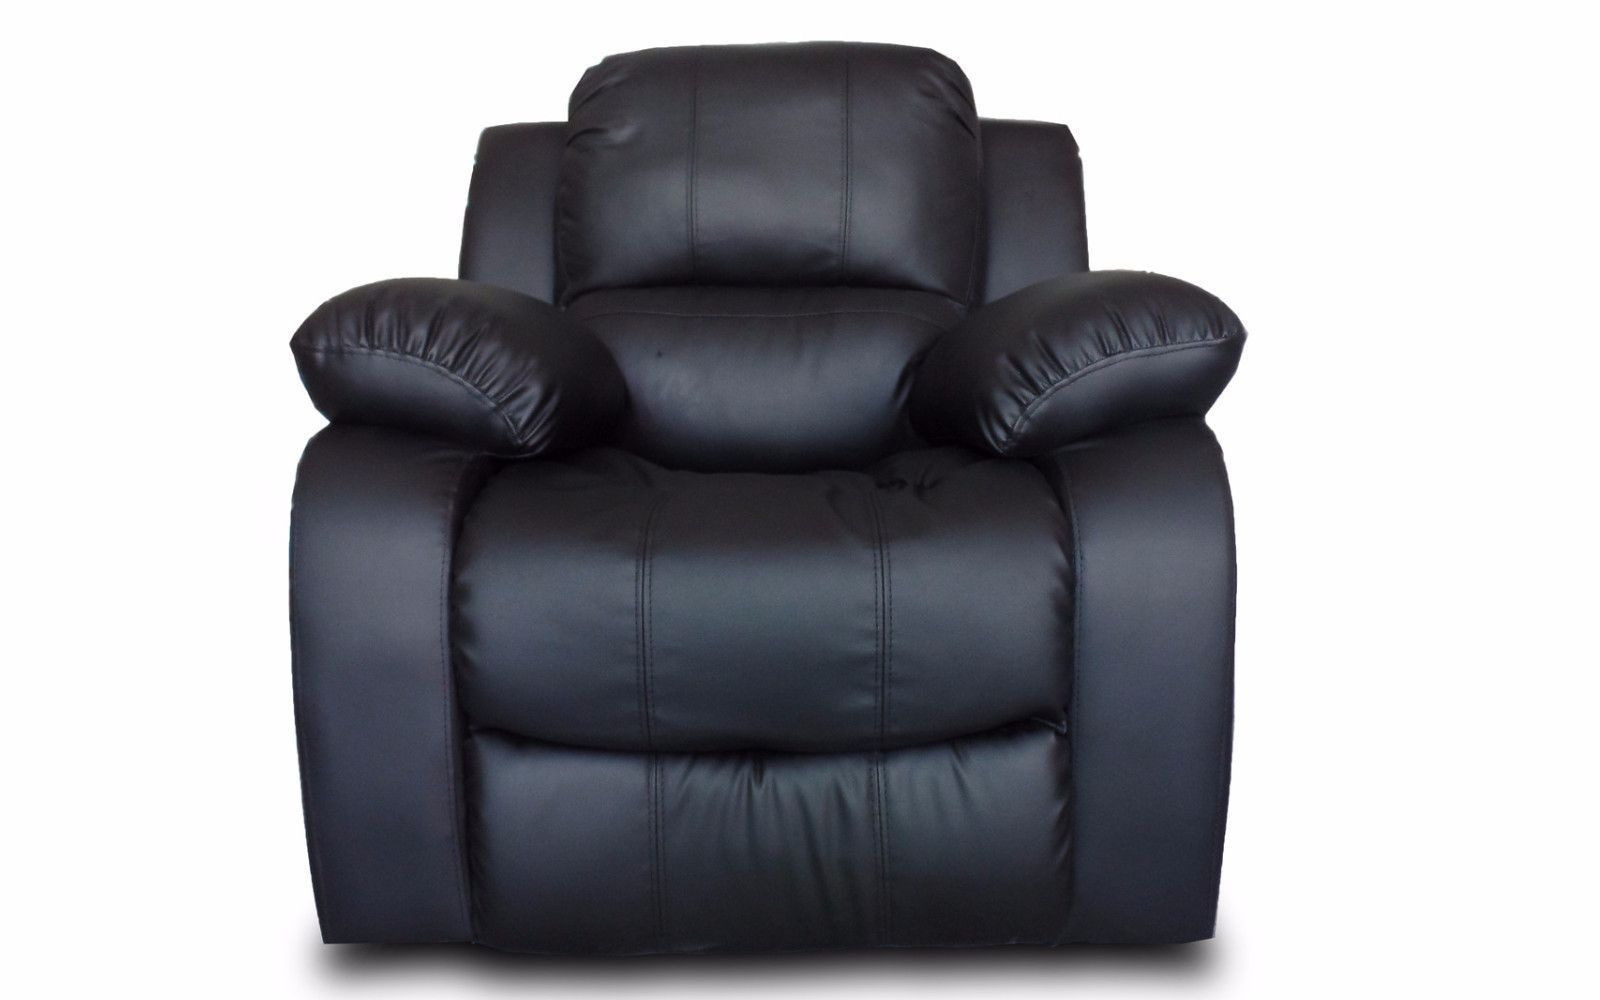 Bob Classic Bonded Leather Recliner Chair Recliner Chair Leather Recliner Chair Oversized Recliner